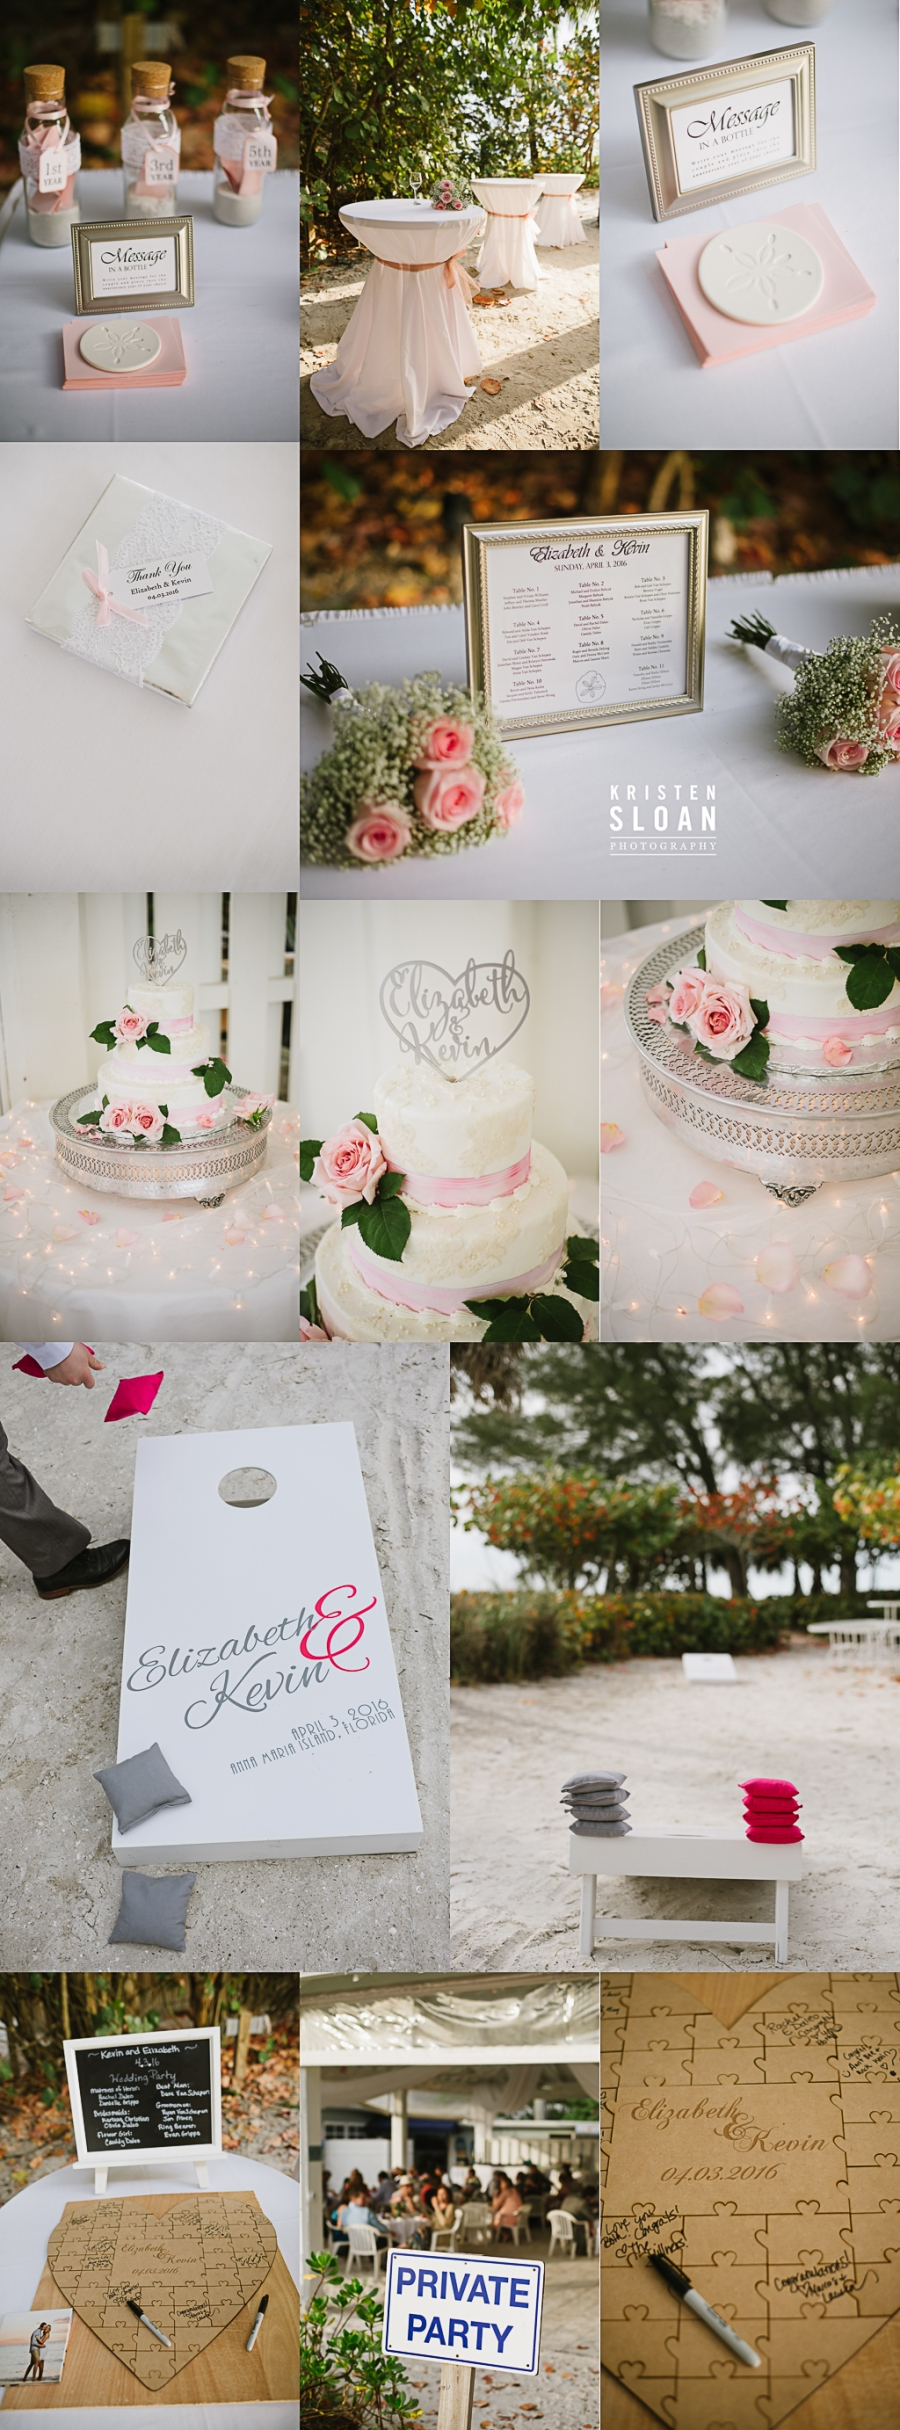 Anna Maria Island Florida Beach Wedding Photographer Kristen Sloan, Sandbar Restaurant Wedding Anna Maria Island, Beach Wedding Decor Pink